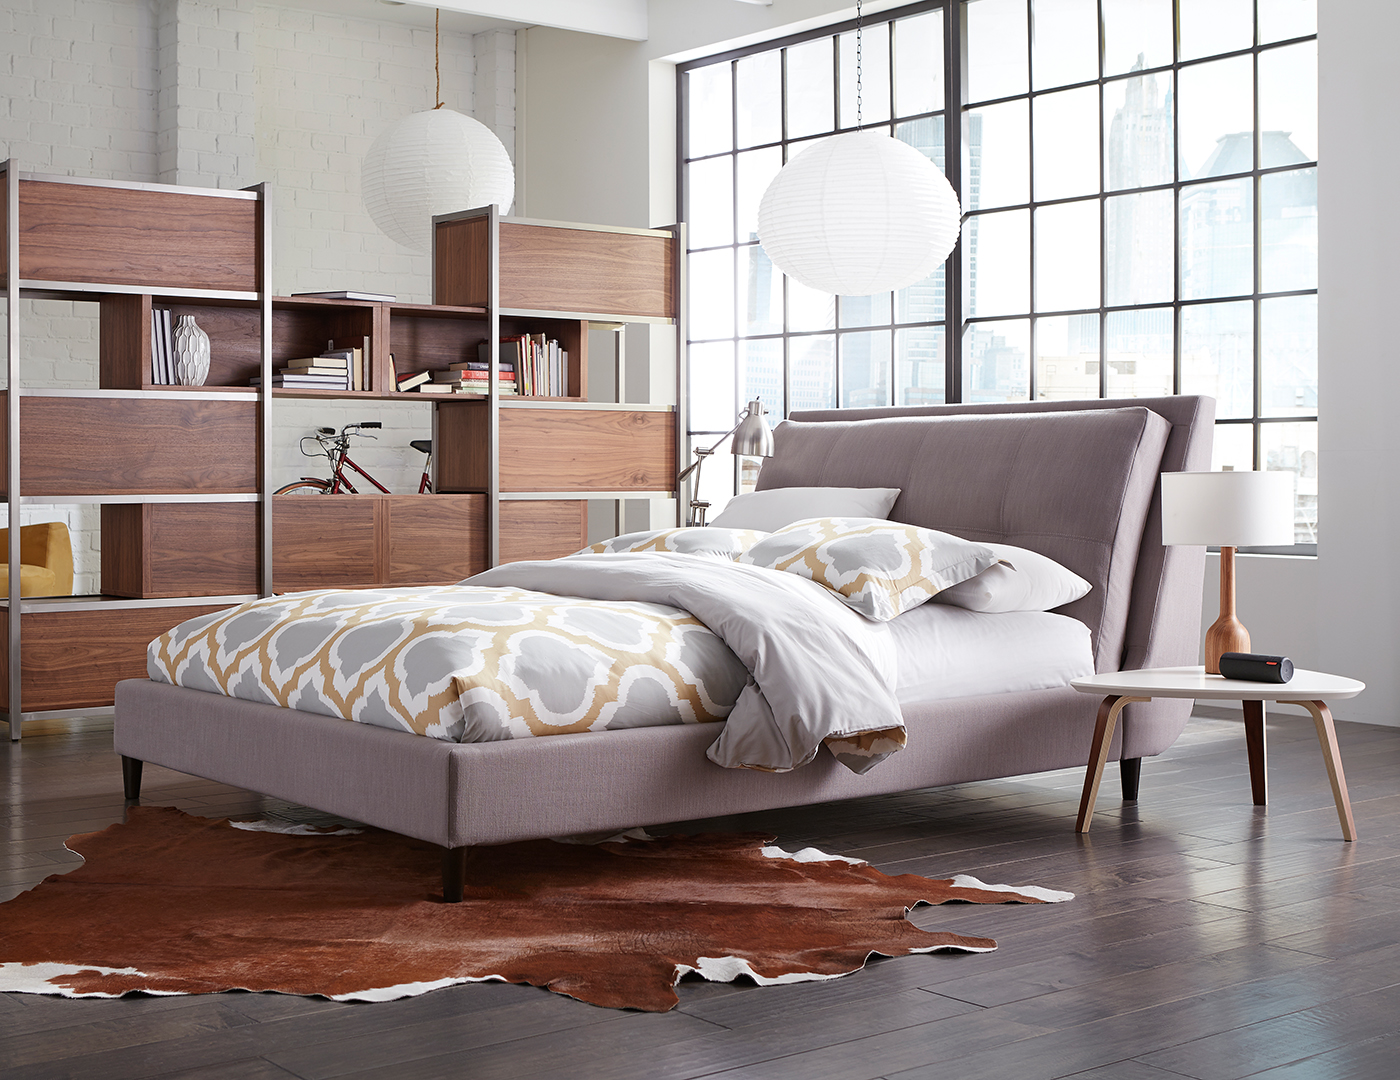 Skyler King Upholstered Bed